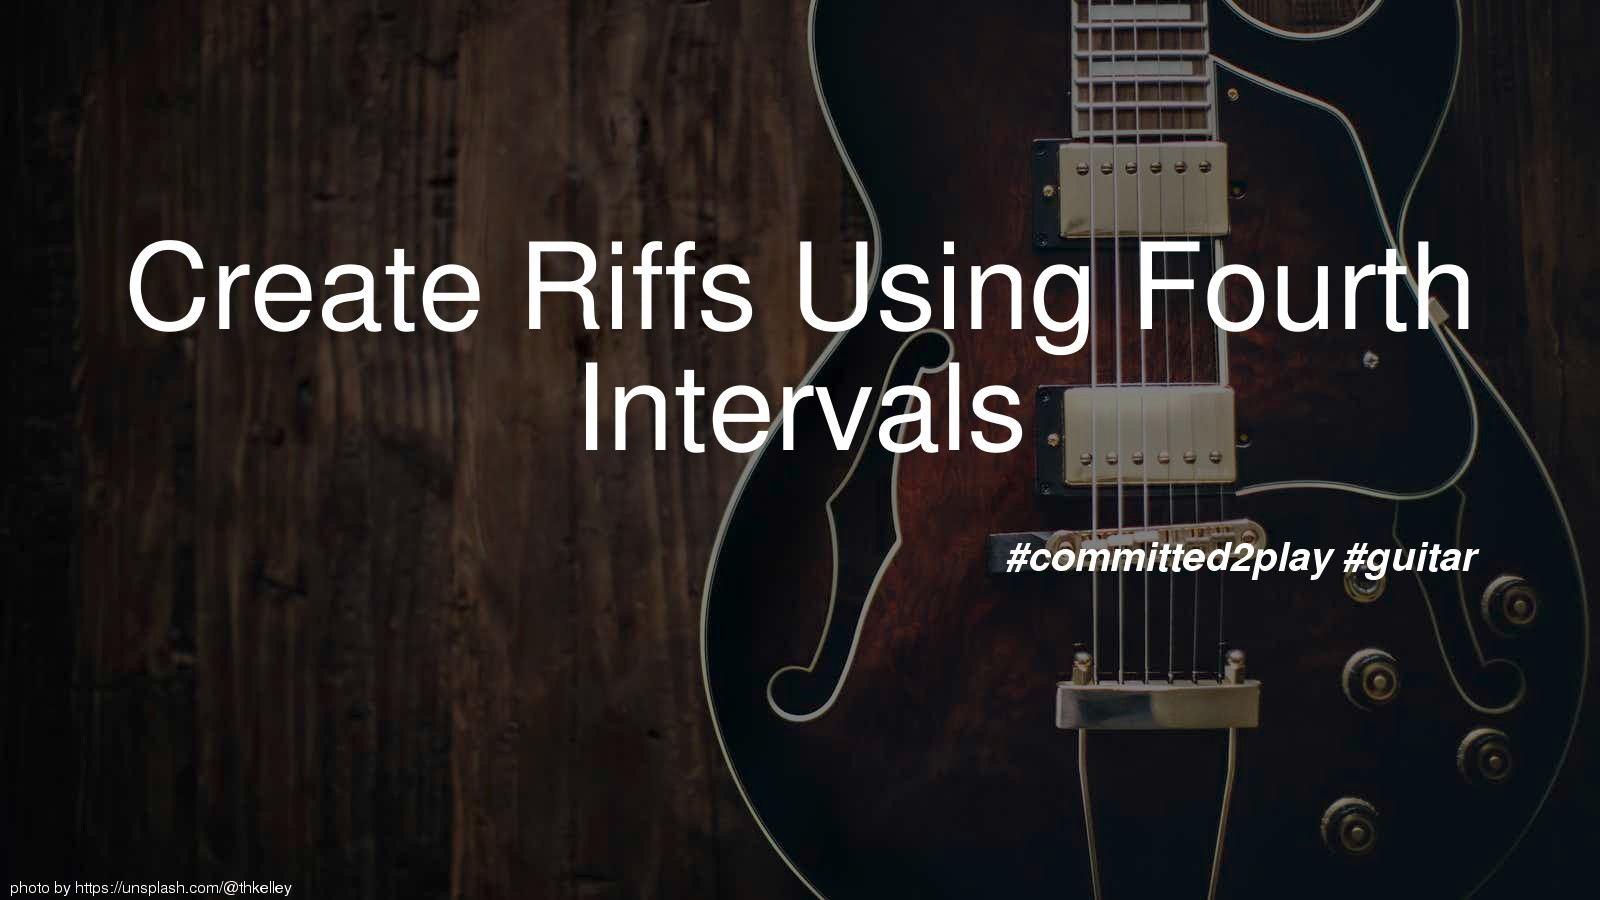 Create Riffs Using Fourth Intervals